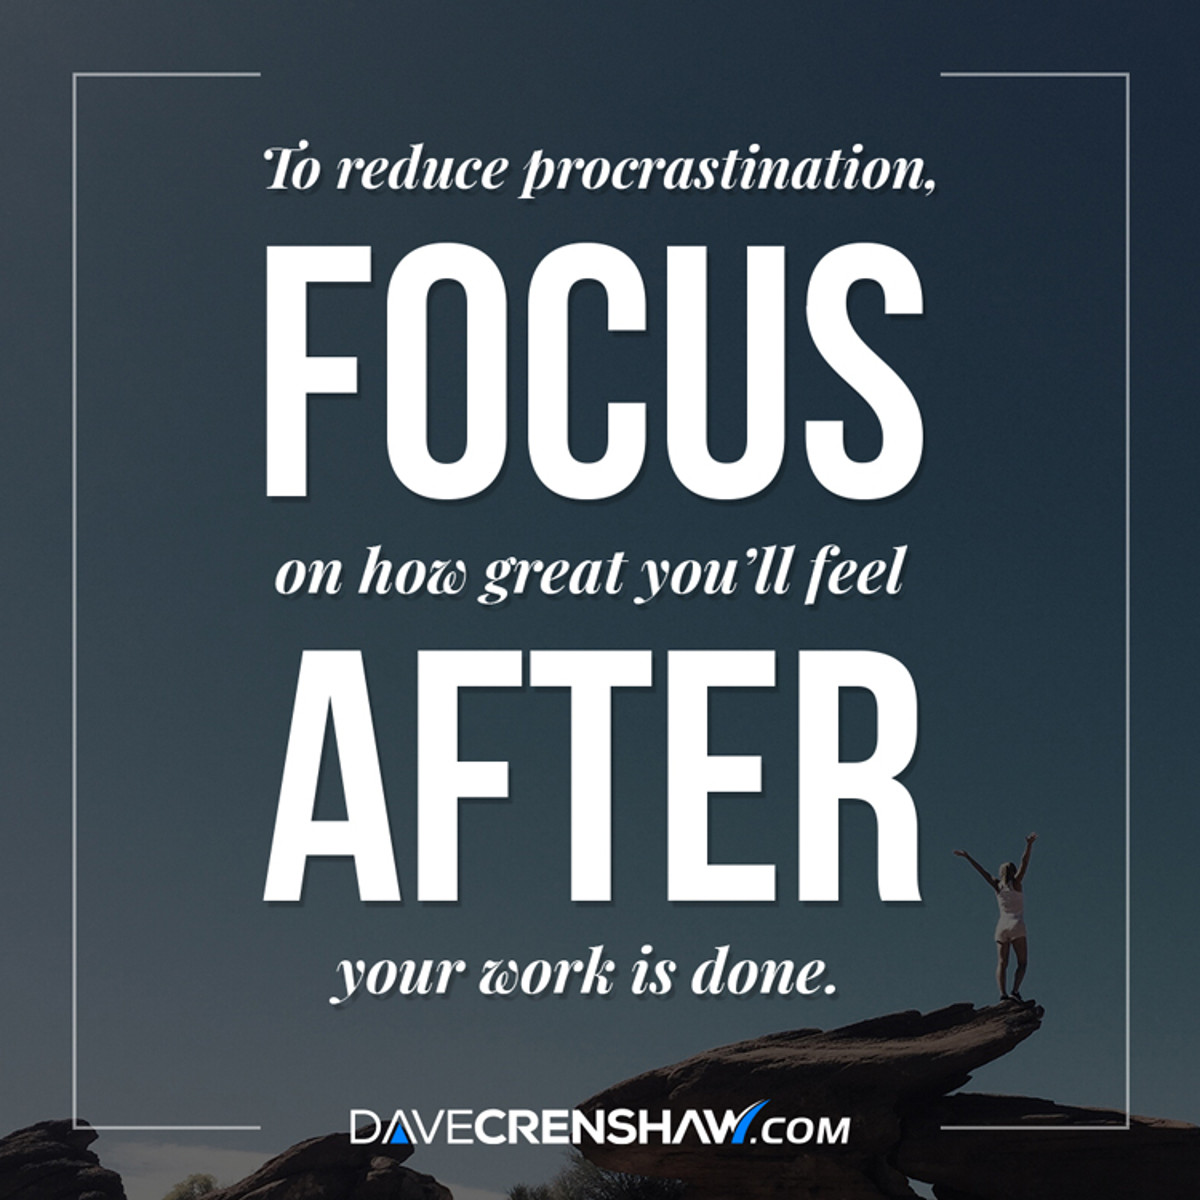 Reduce procrastination by focusing on how great you'll feel afterwards